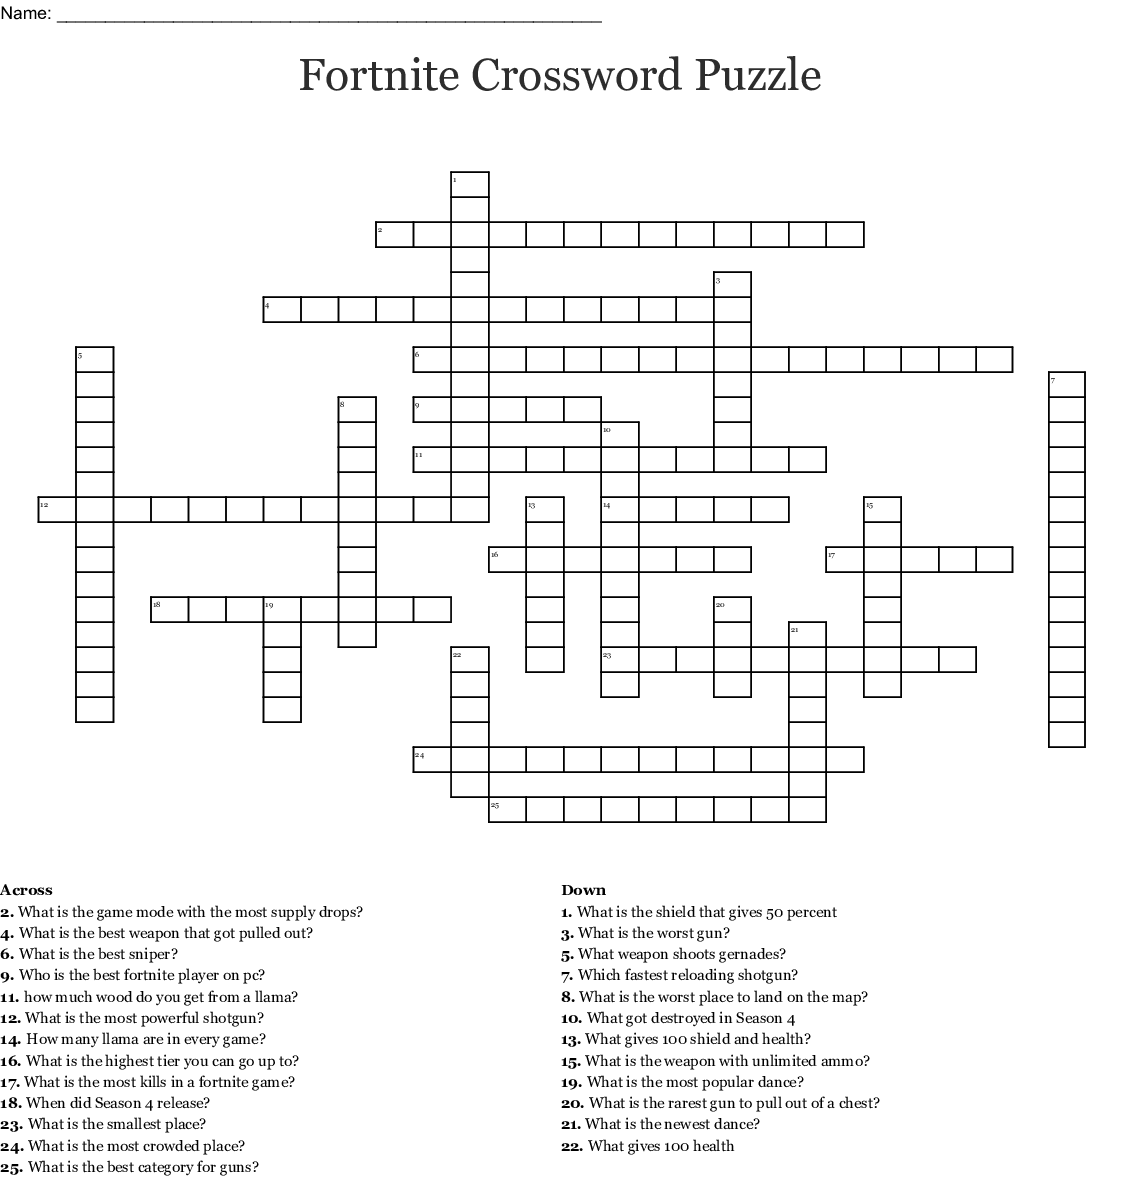 image relating to Printable Fortnite Map named Fortnite Crossword Puzzle - WordMint